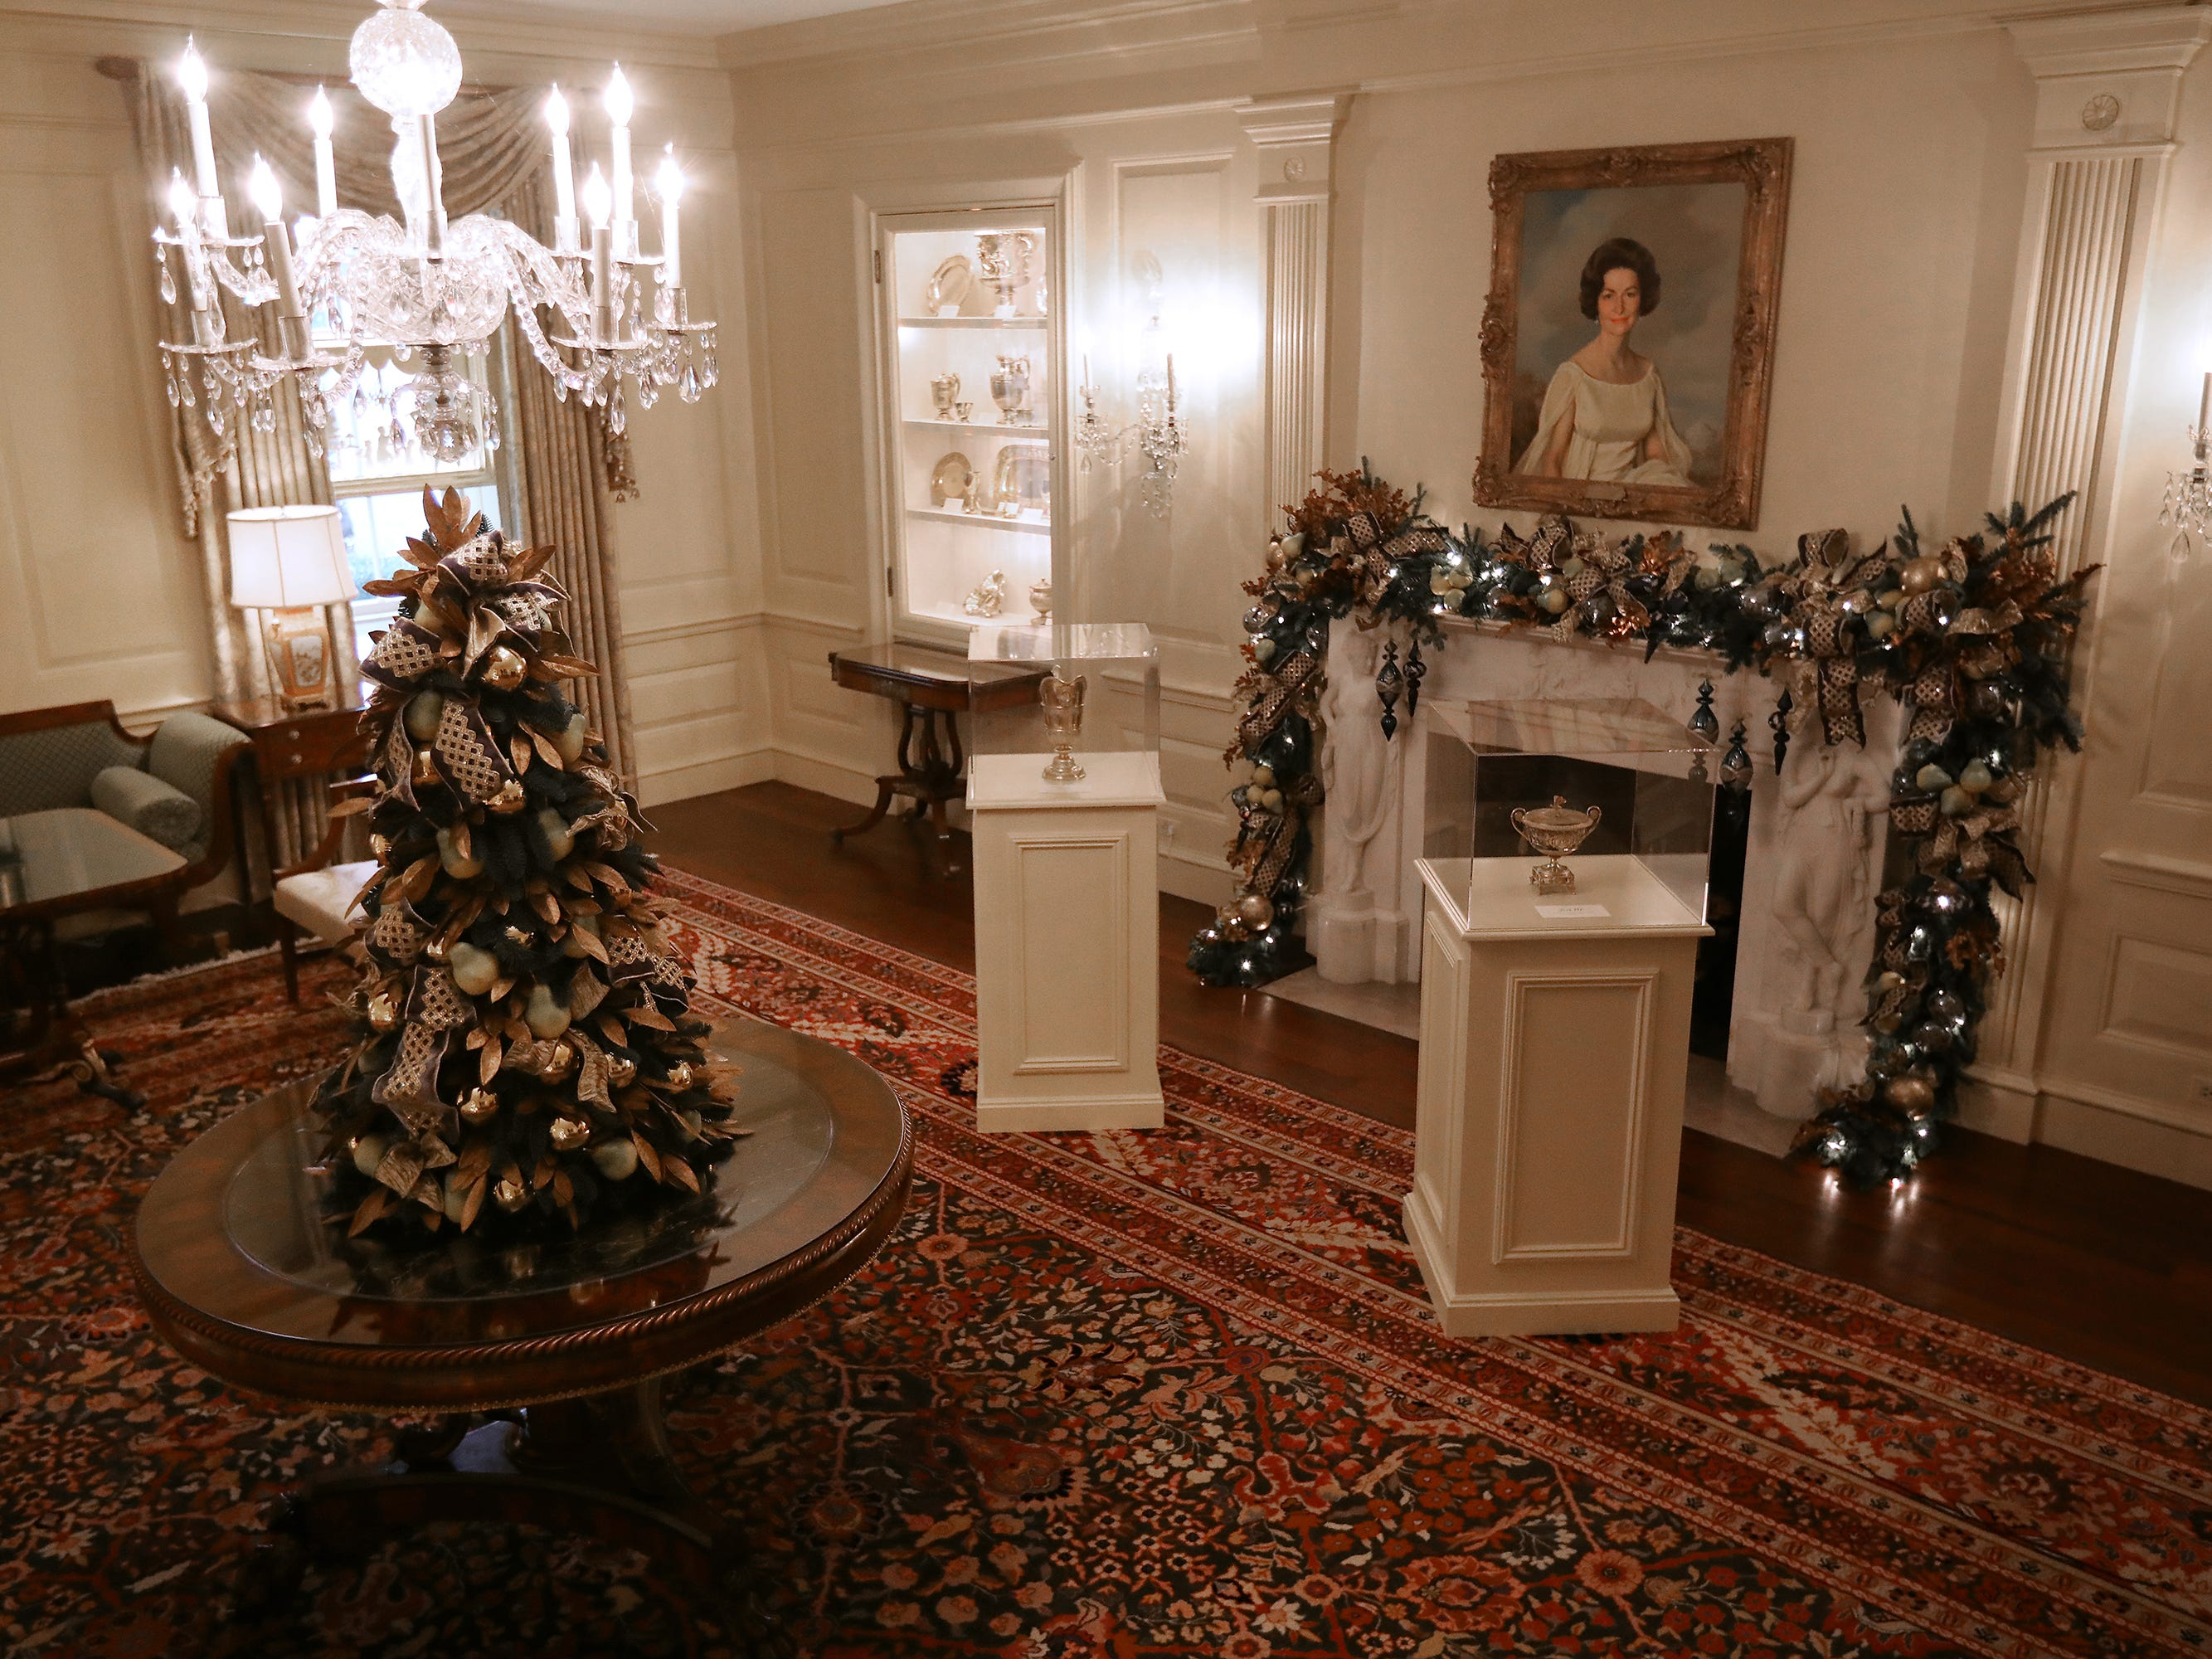 The Vermeil Room is decorated for the holidays at the White House, Nov. 26, 2018 in Washington.